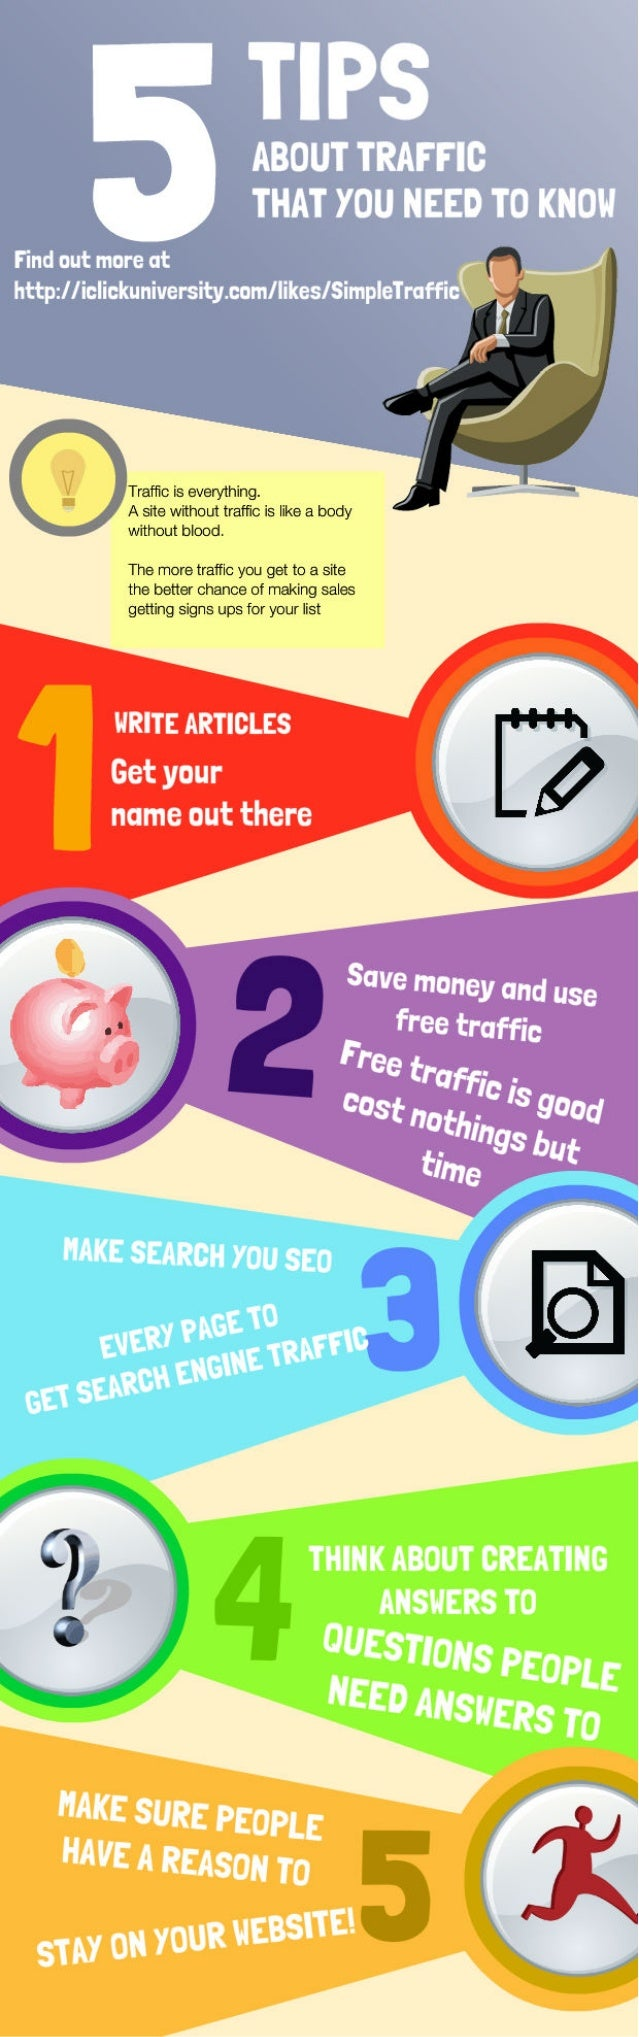 5 tips-about-traffic